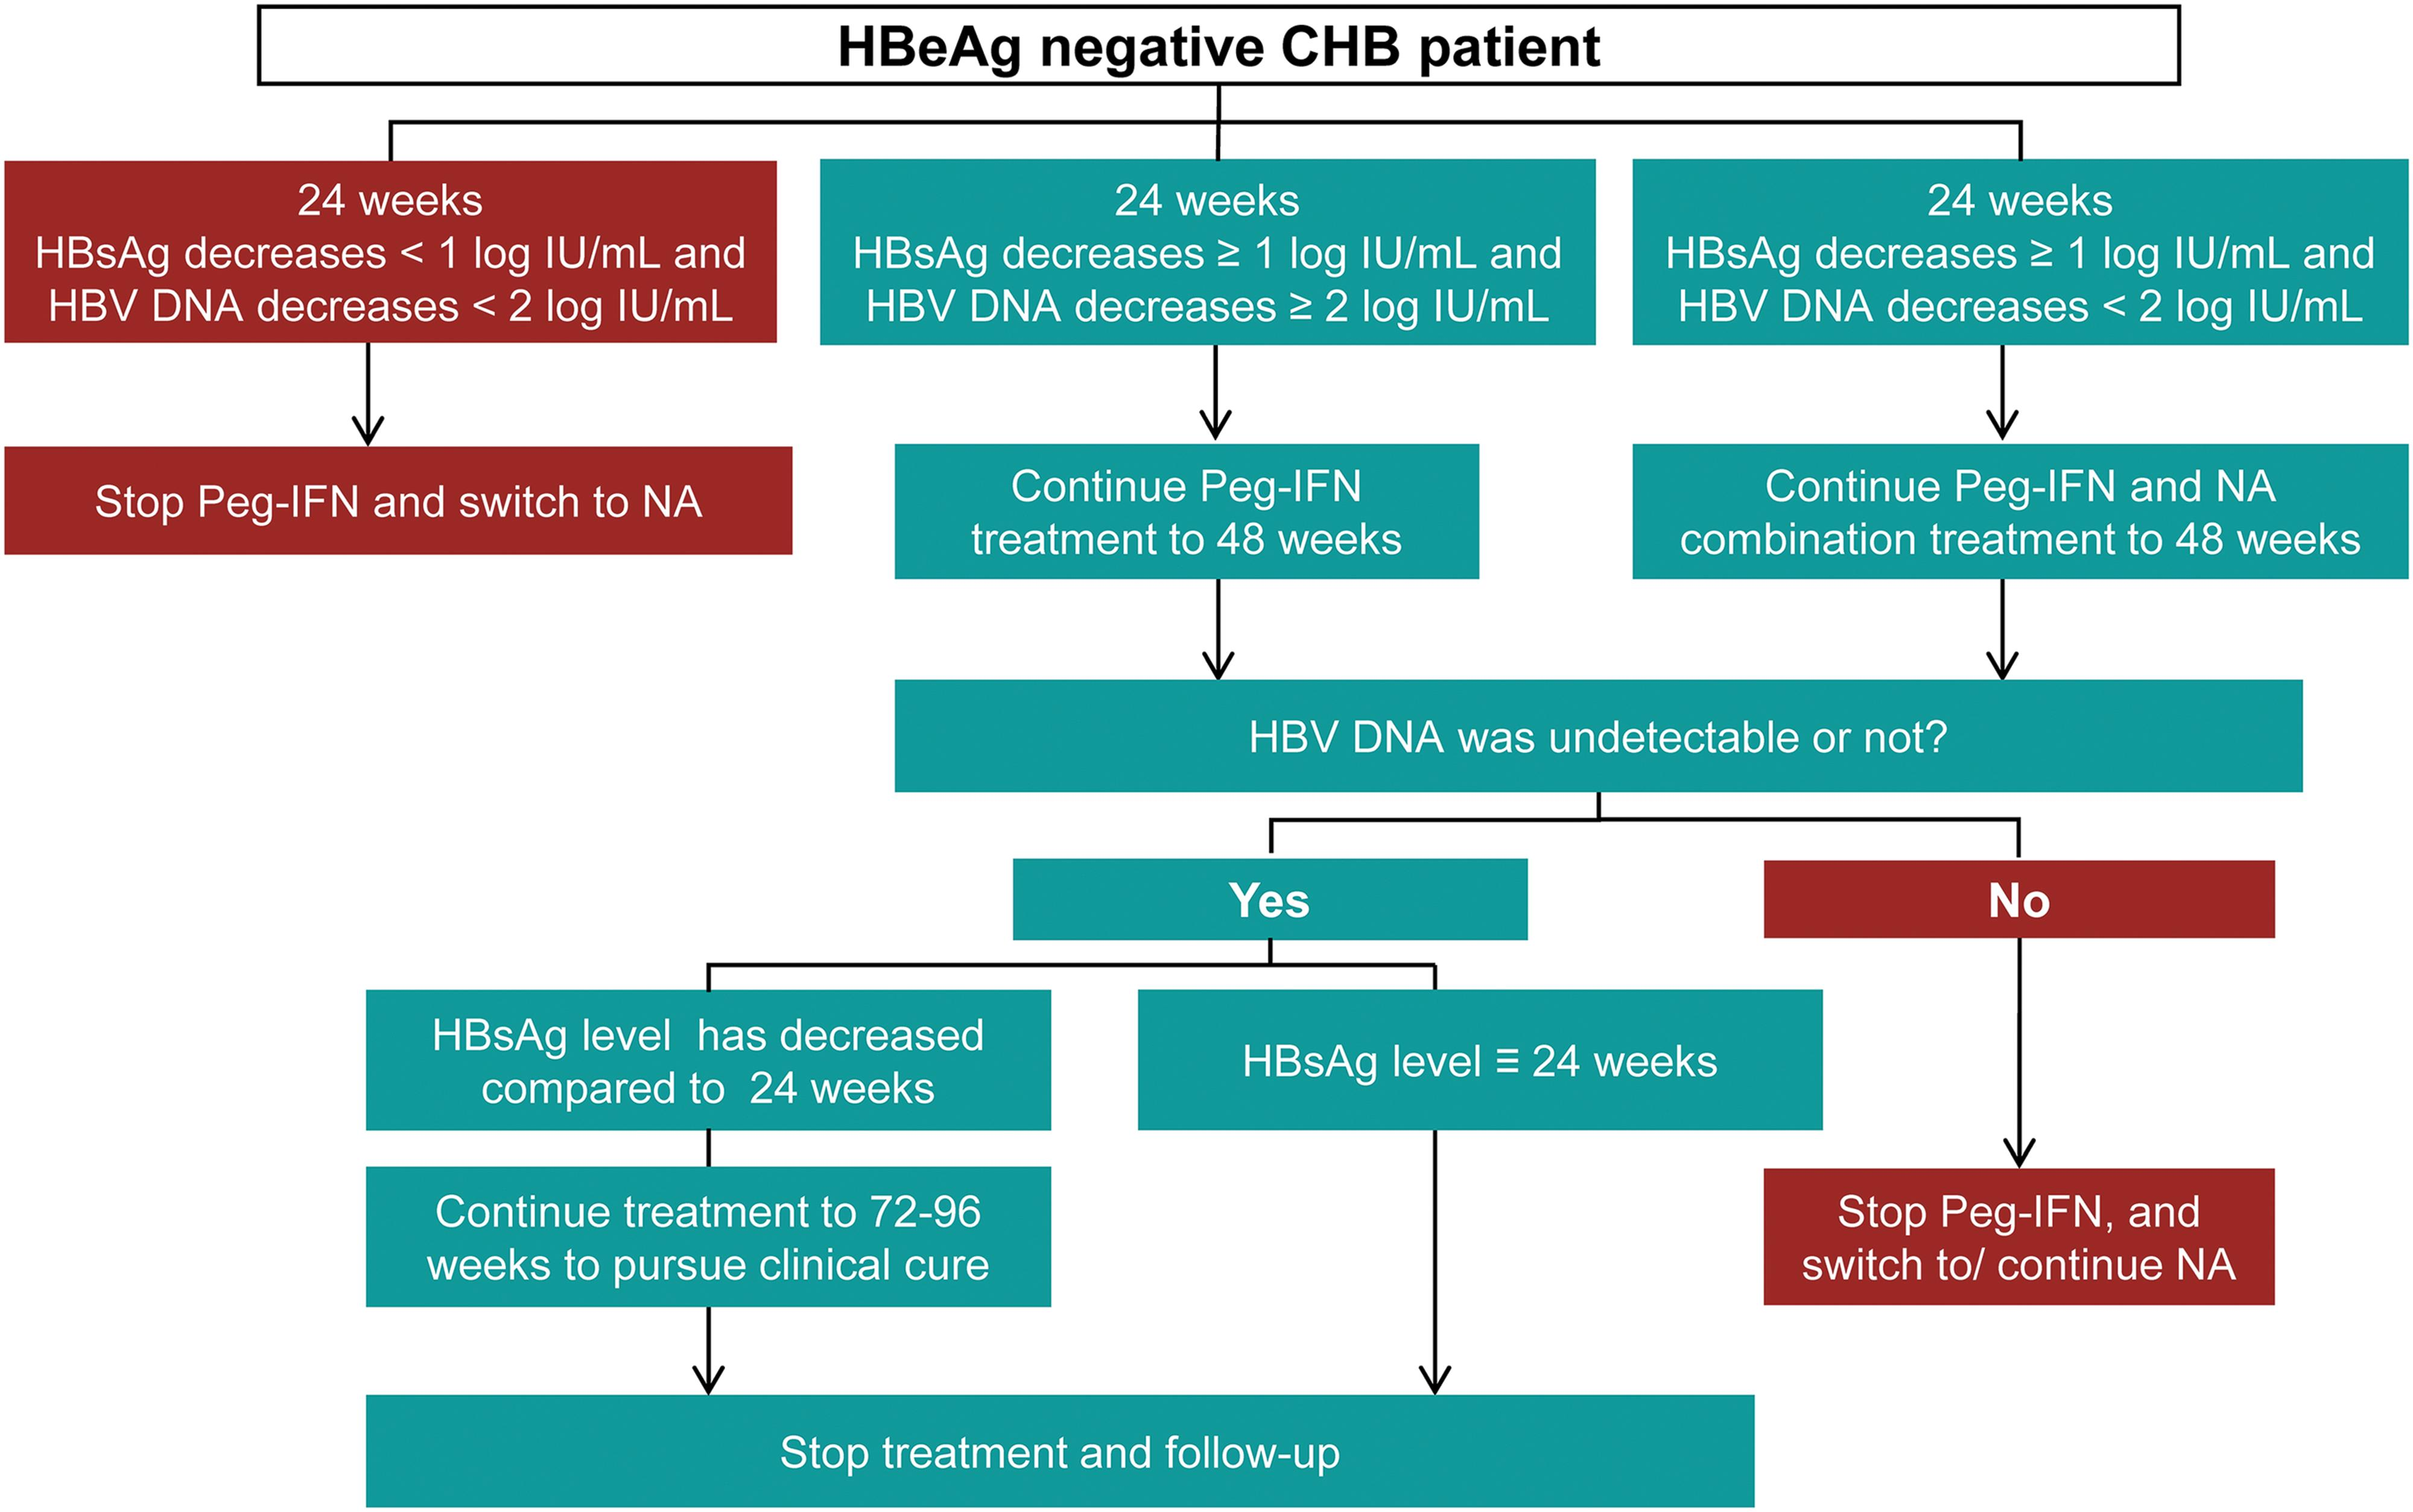 Adjustment during Peg-IFN treatment for HBeAg-negative CHB patients.